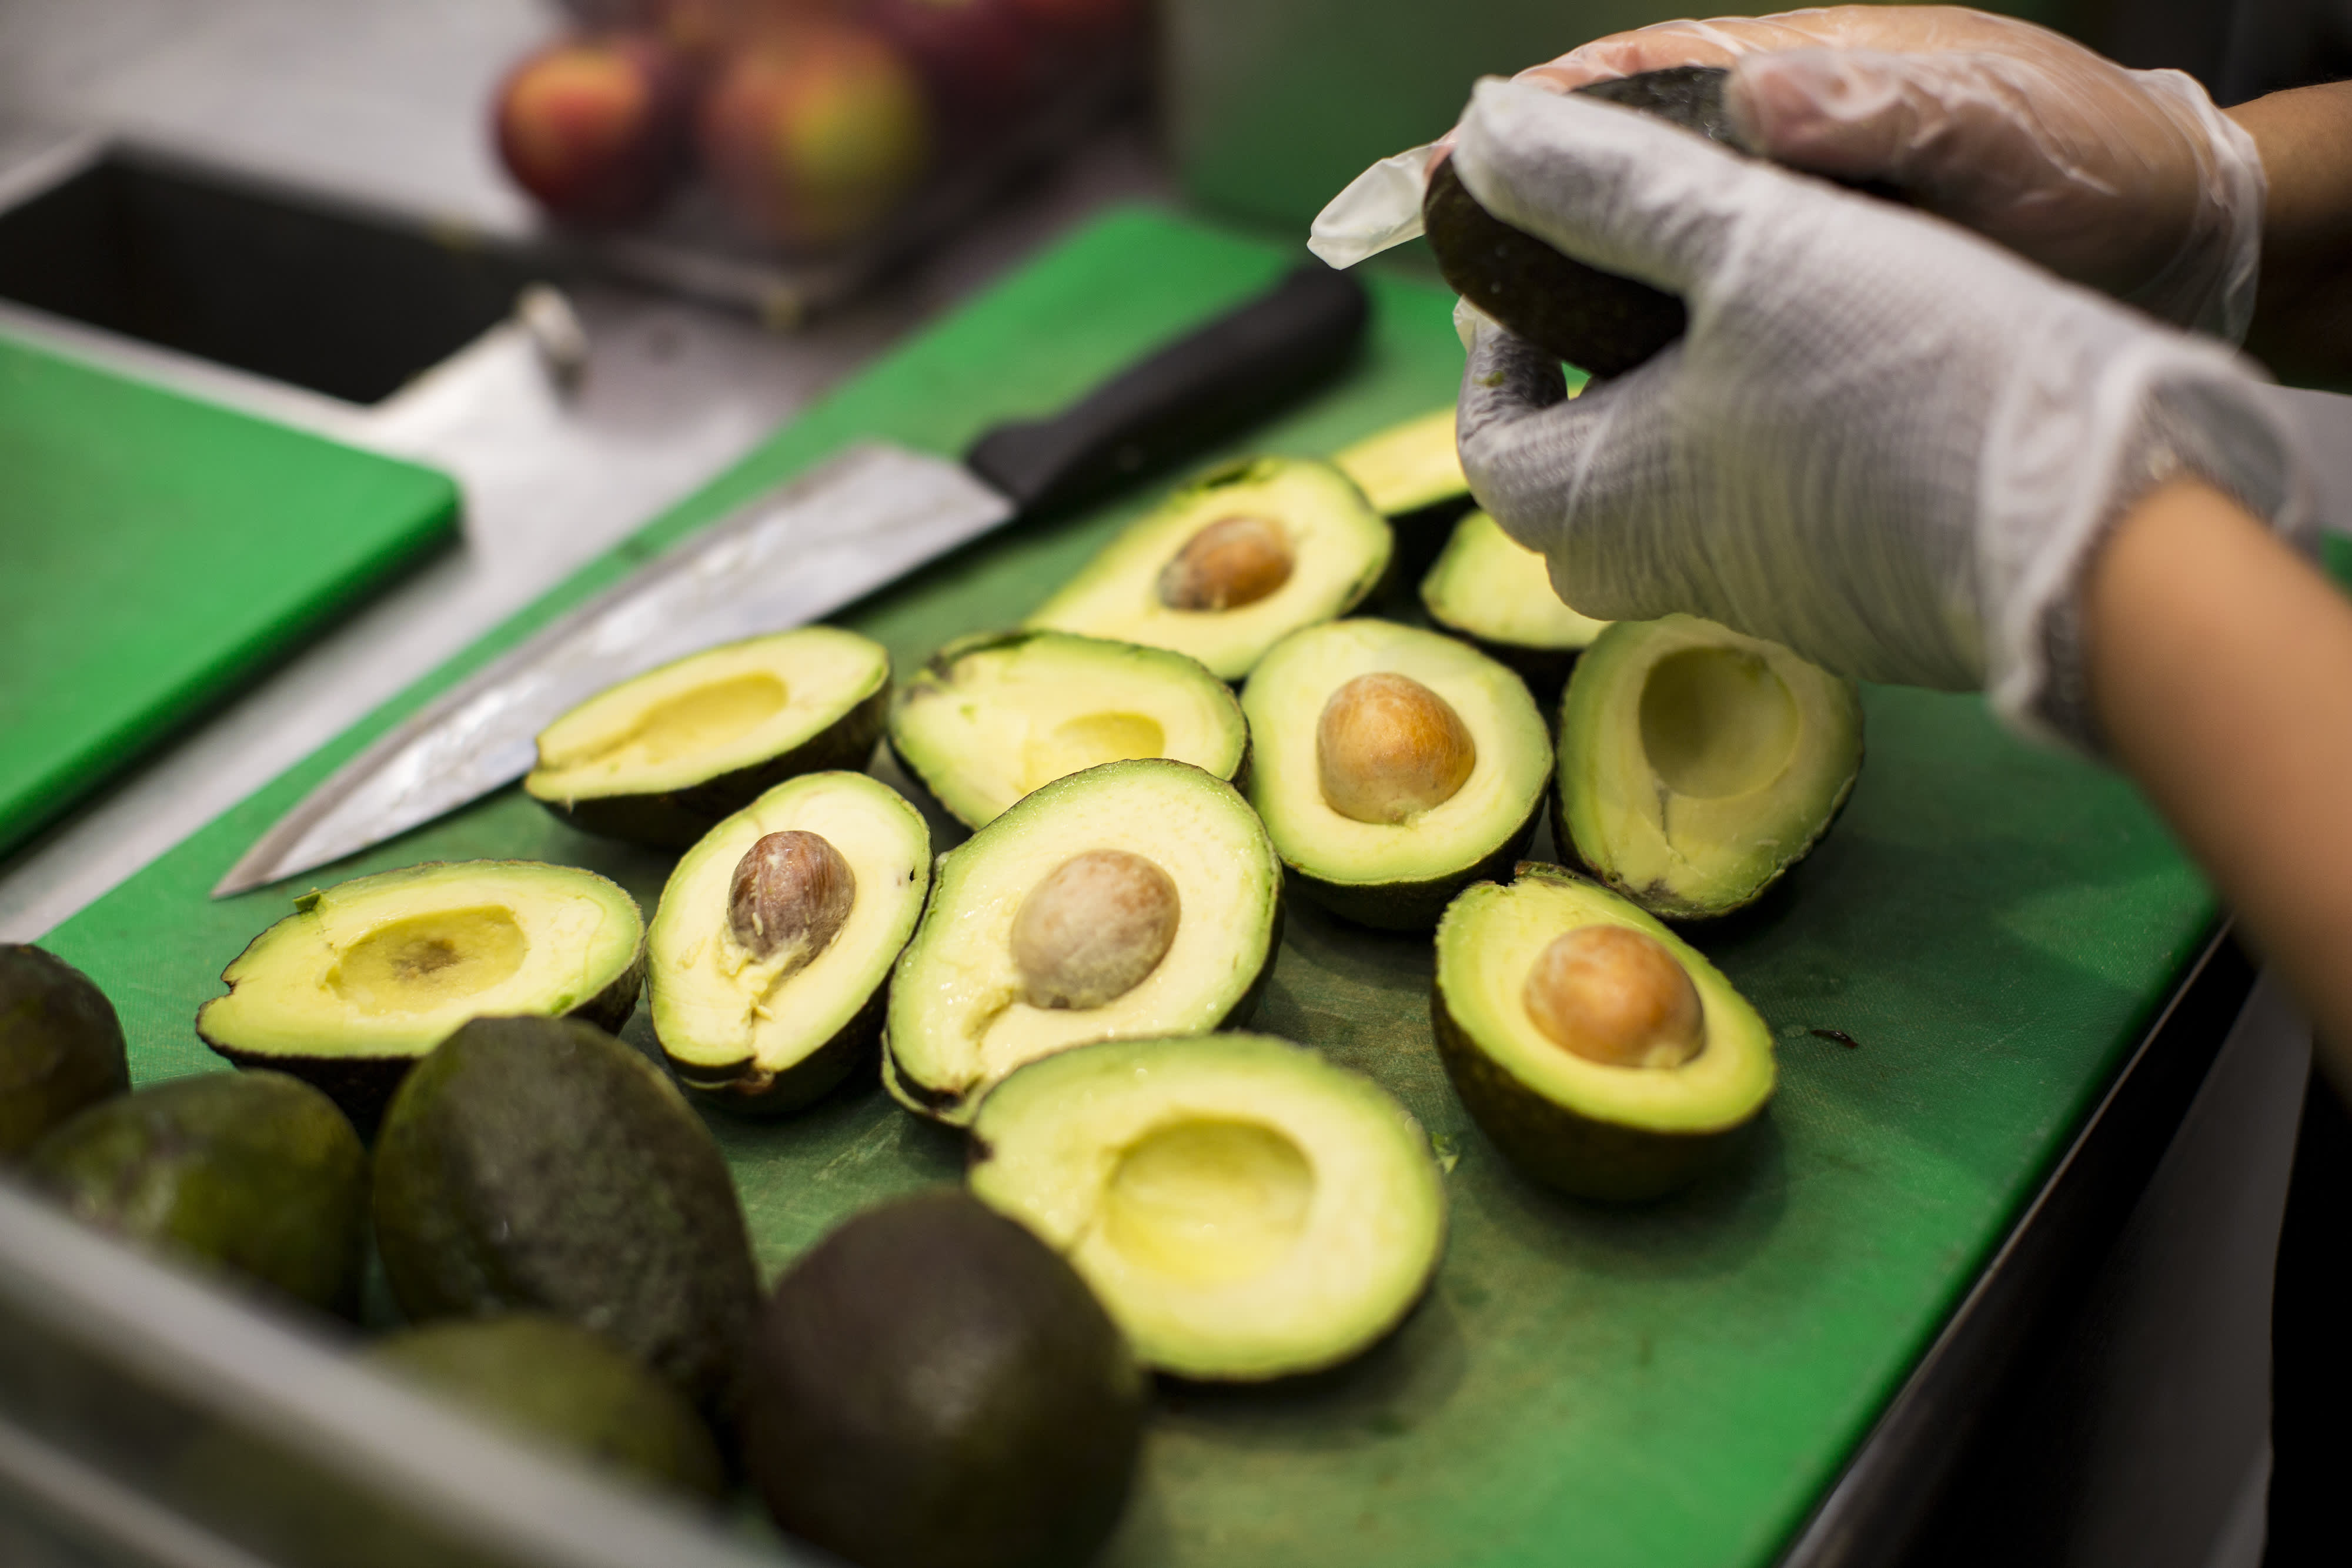 Avocados will probably get more expensive under Trump's Mexico tariffs